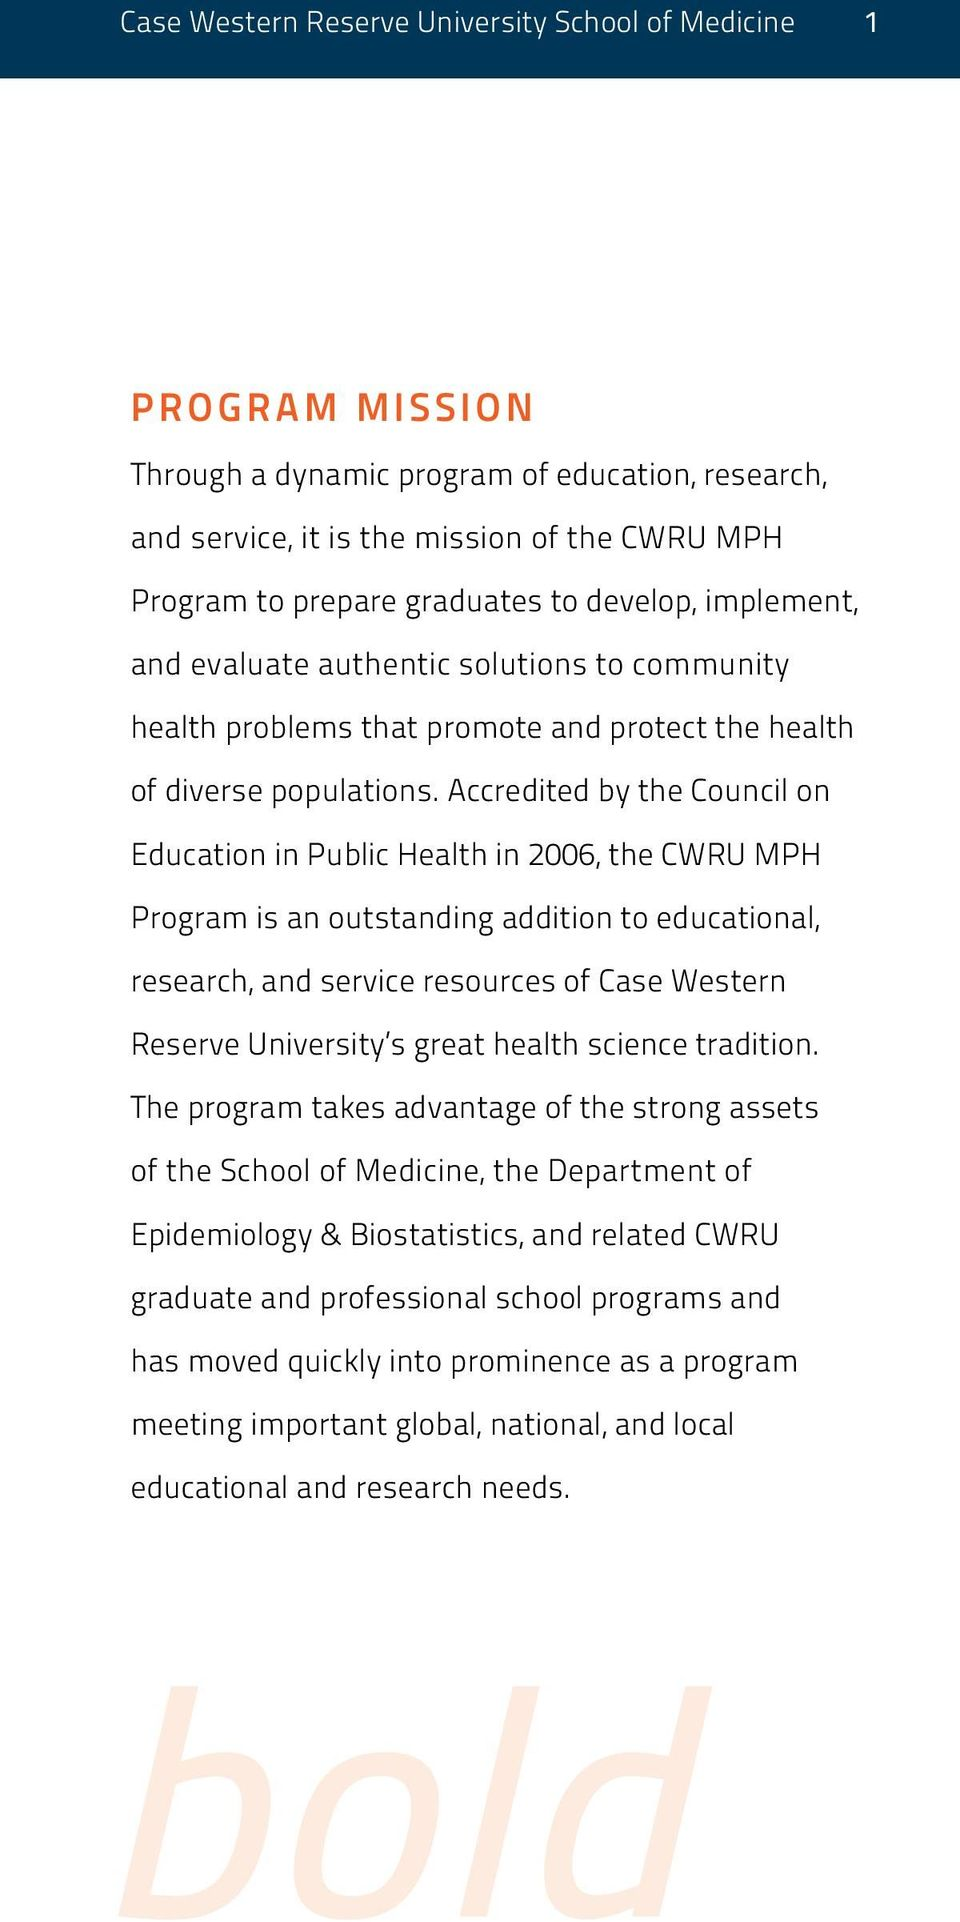 Accredited by the Council on Education in Public Health in 2006, the CWRU MPH Program is an outstanding addition to educational, research, and service resources of Case Western Reserve University s